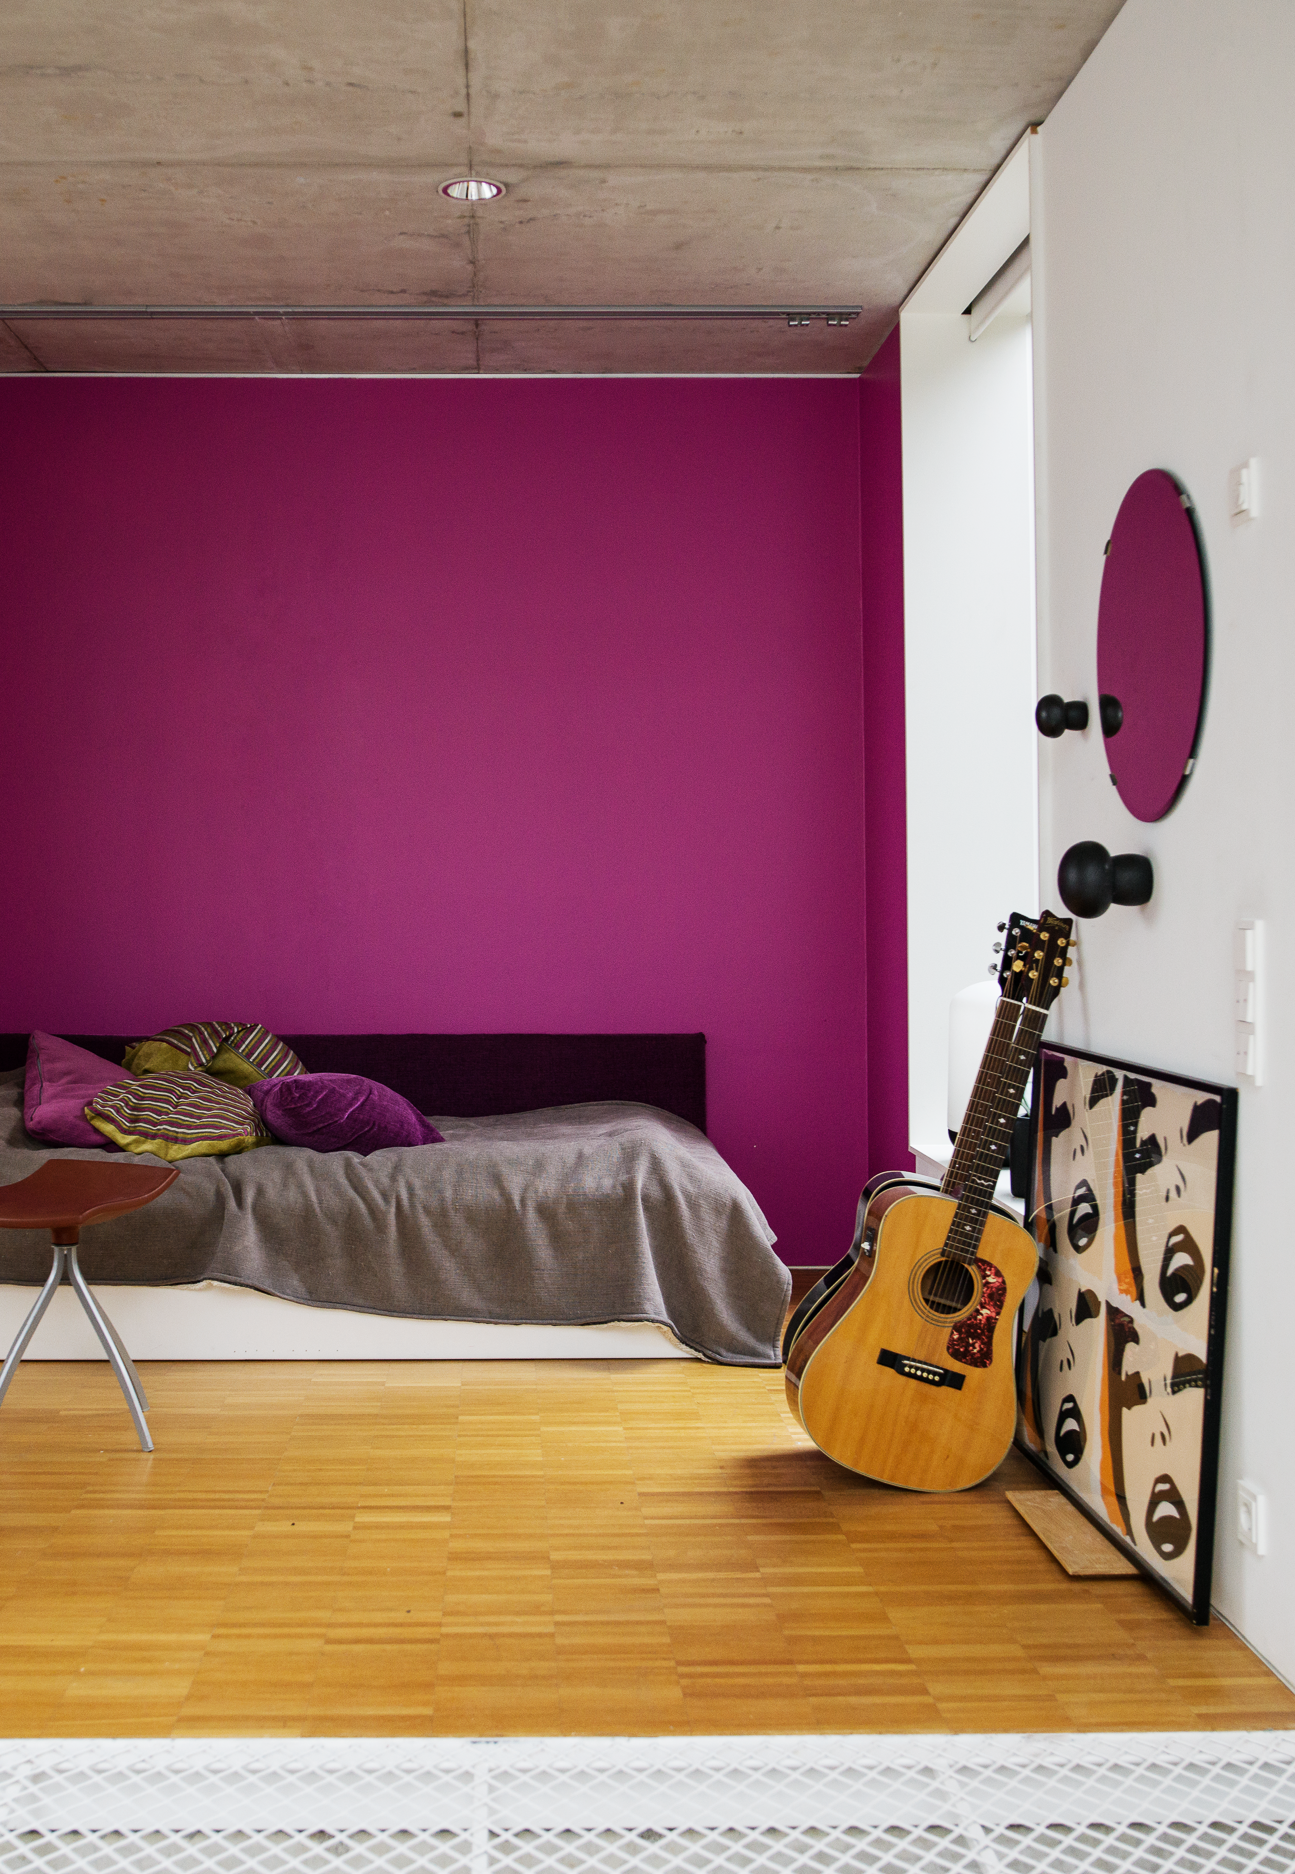 Courage to color. This space lives through the accentuated wall ...